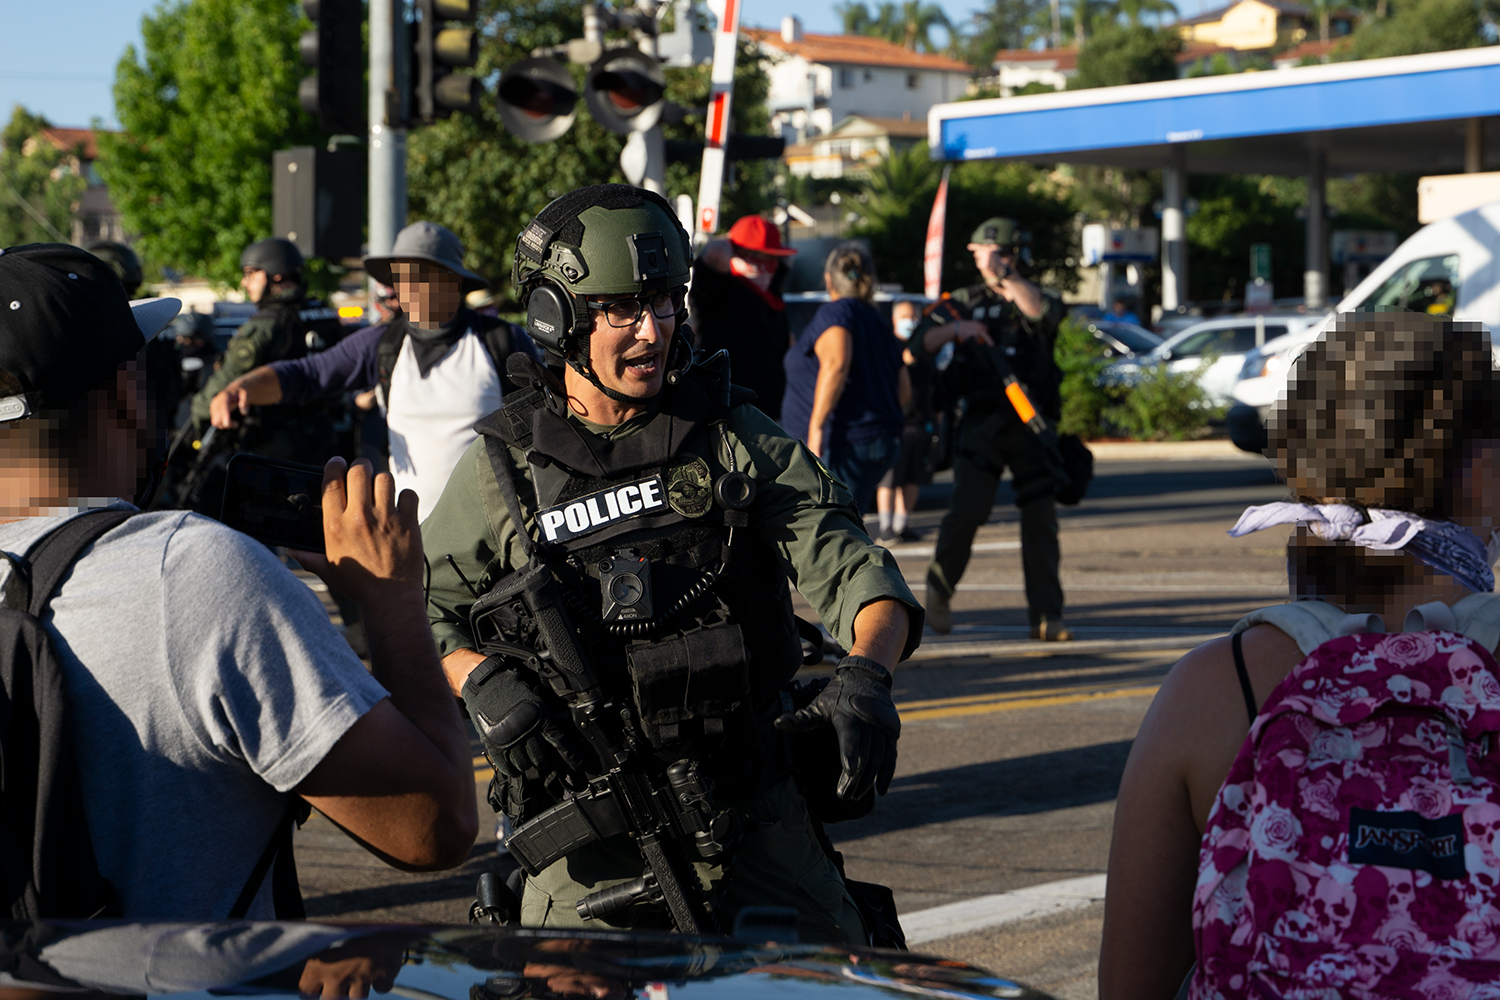 A SWAT officer with an M4 intervenes in the brawl. Photo by Tom Mann.